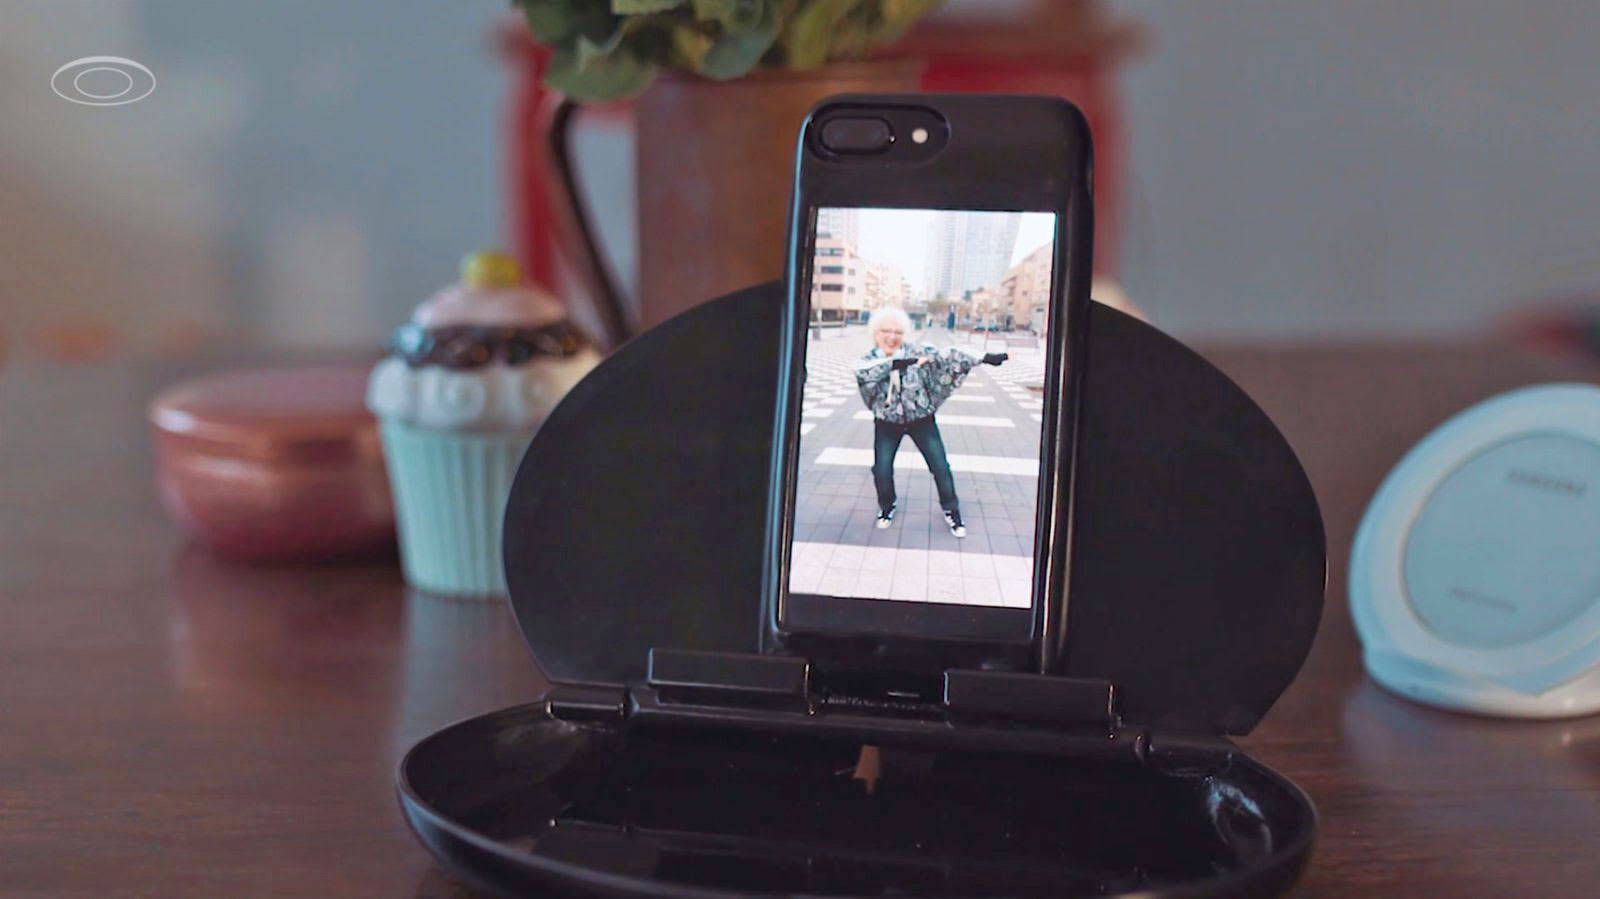 This iPhone case is basically an Android phone